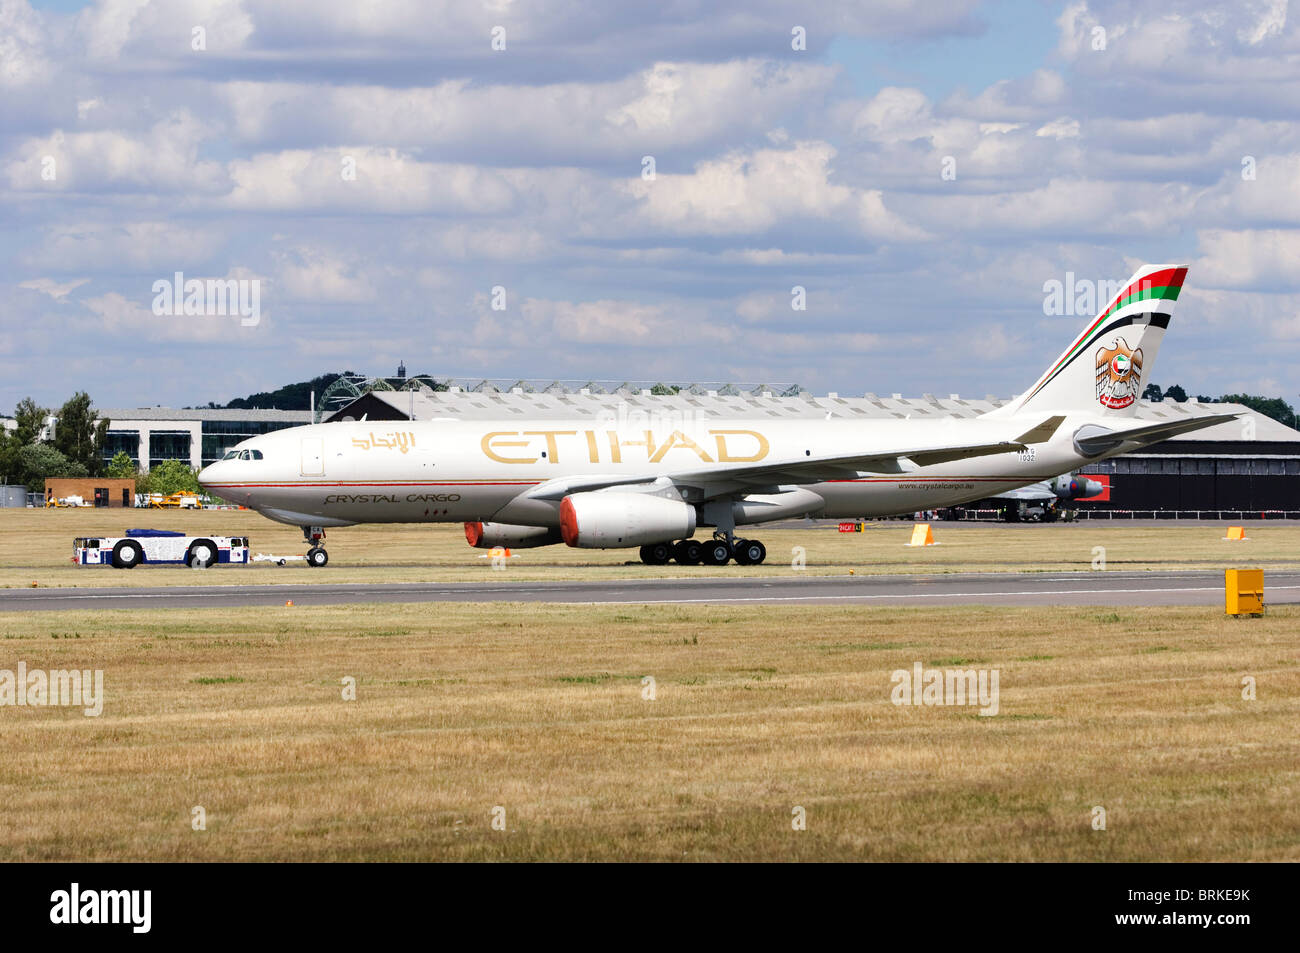 Airbus A330-243F operated by Etihad Crystal Cargo at Farnborough Airshow, UK. - Stock Image